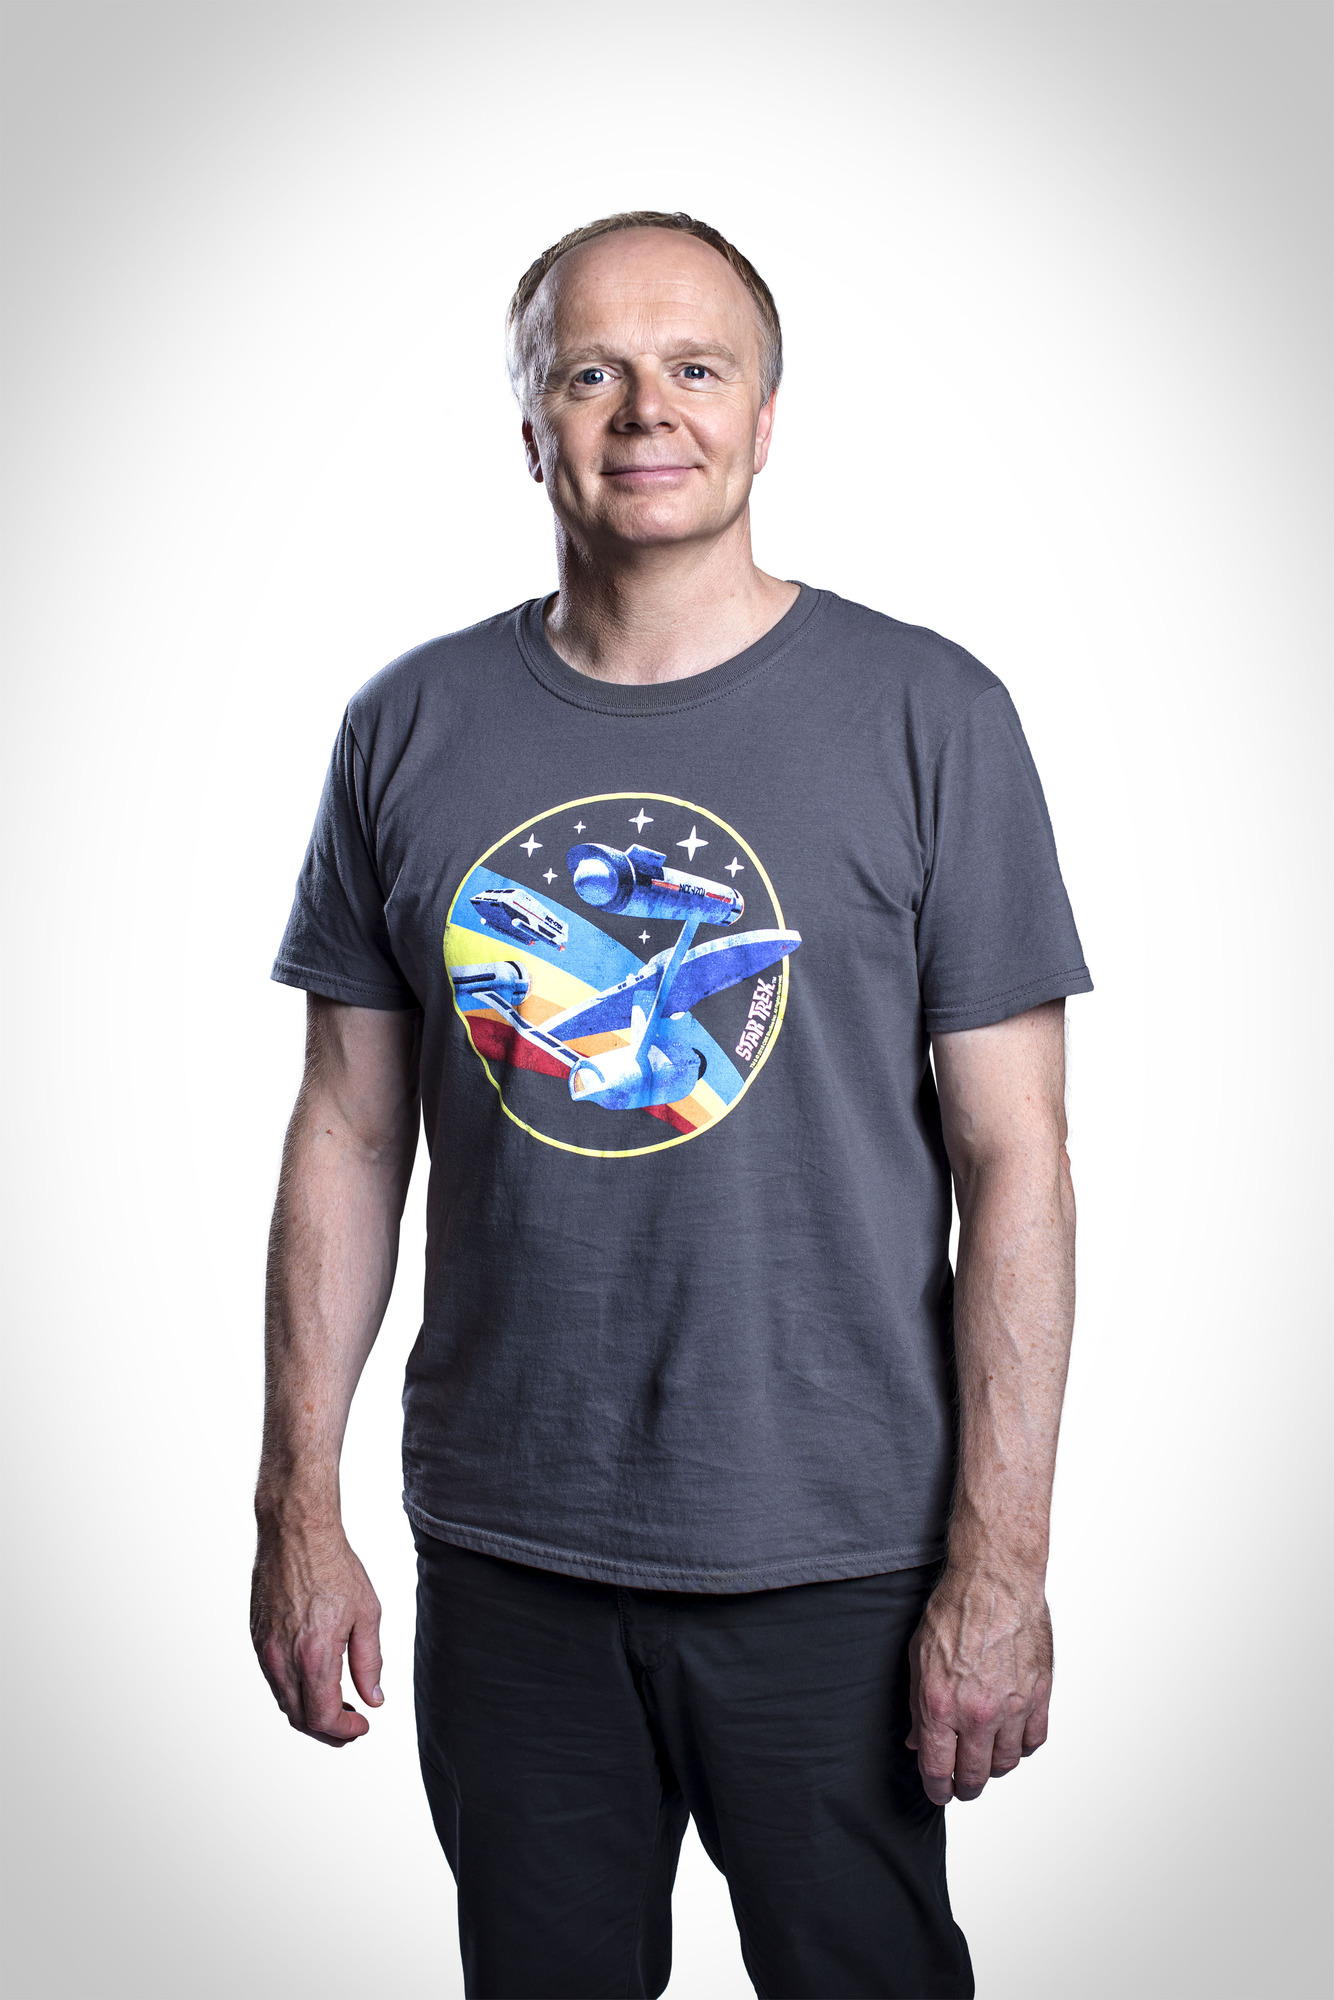 Jason Watkins is Roger in Hold the Sunset